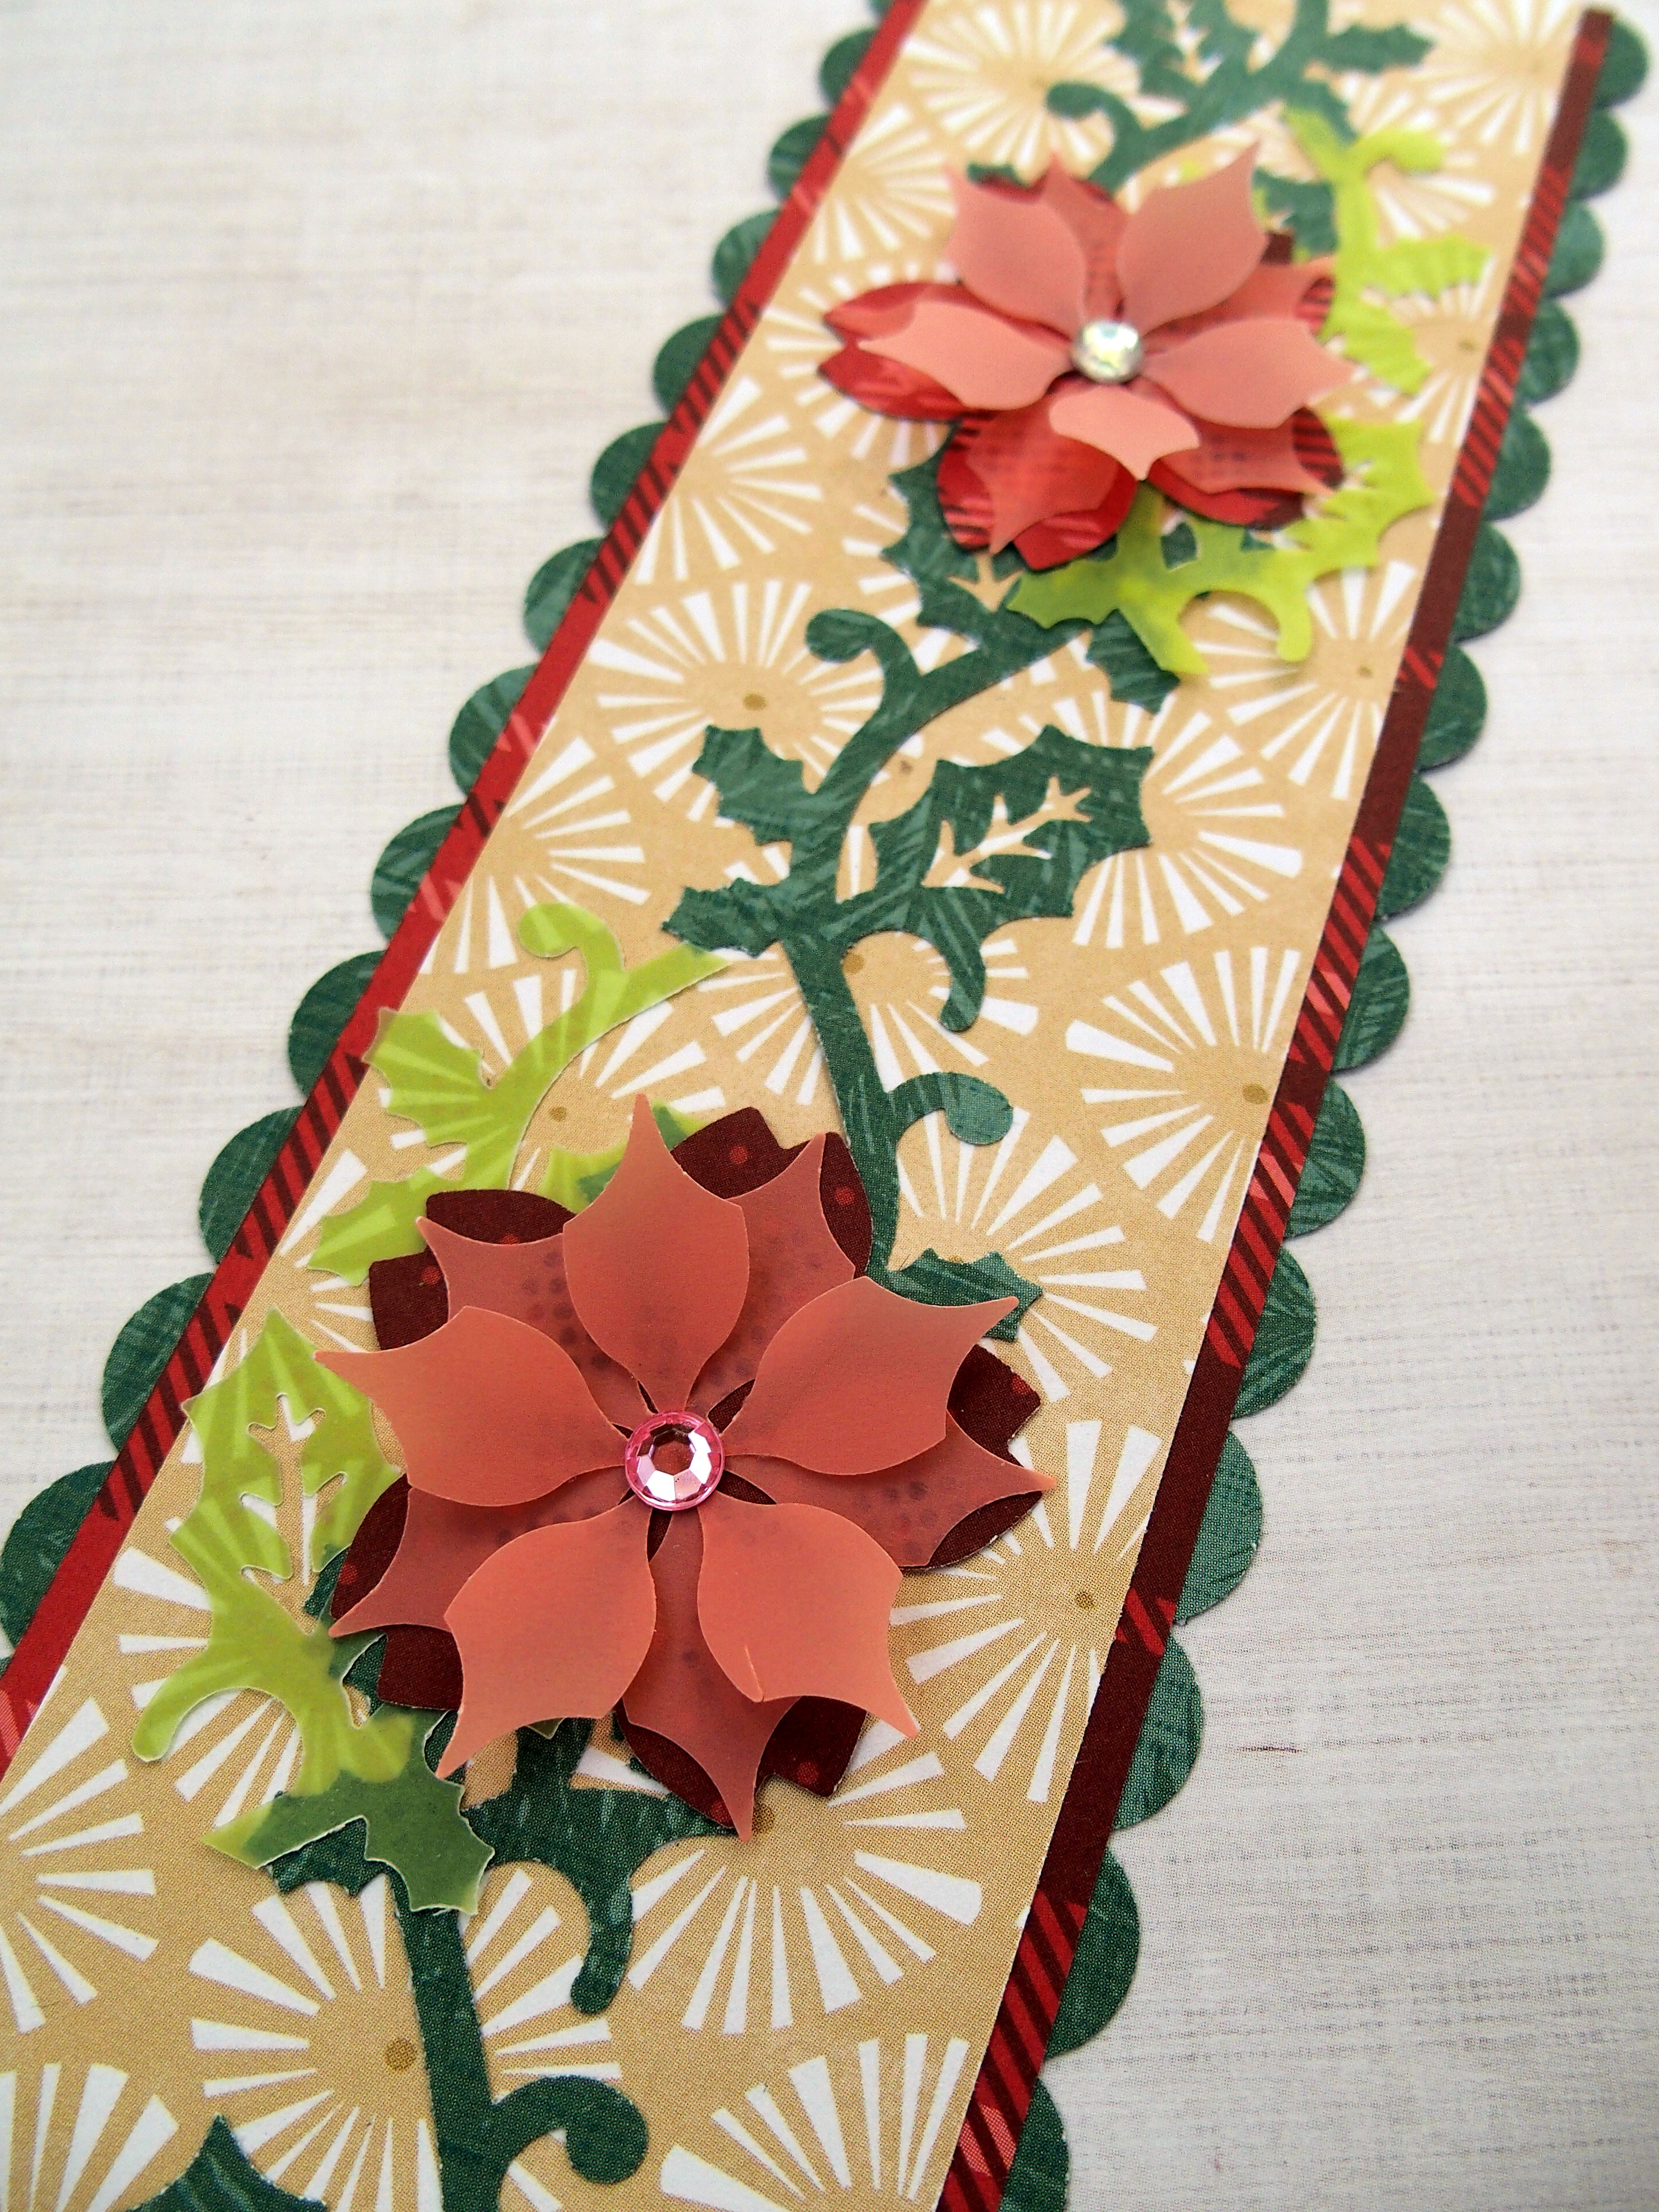 Holly-Punch-Poinsettia-Scrapbook-Border-Creative-Memories